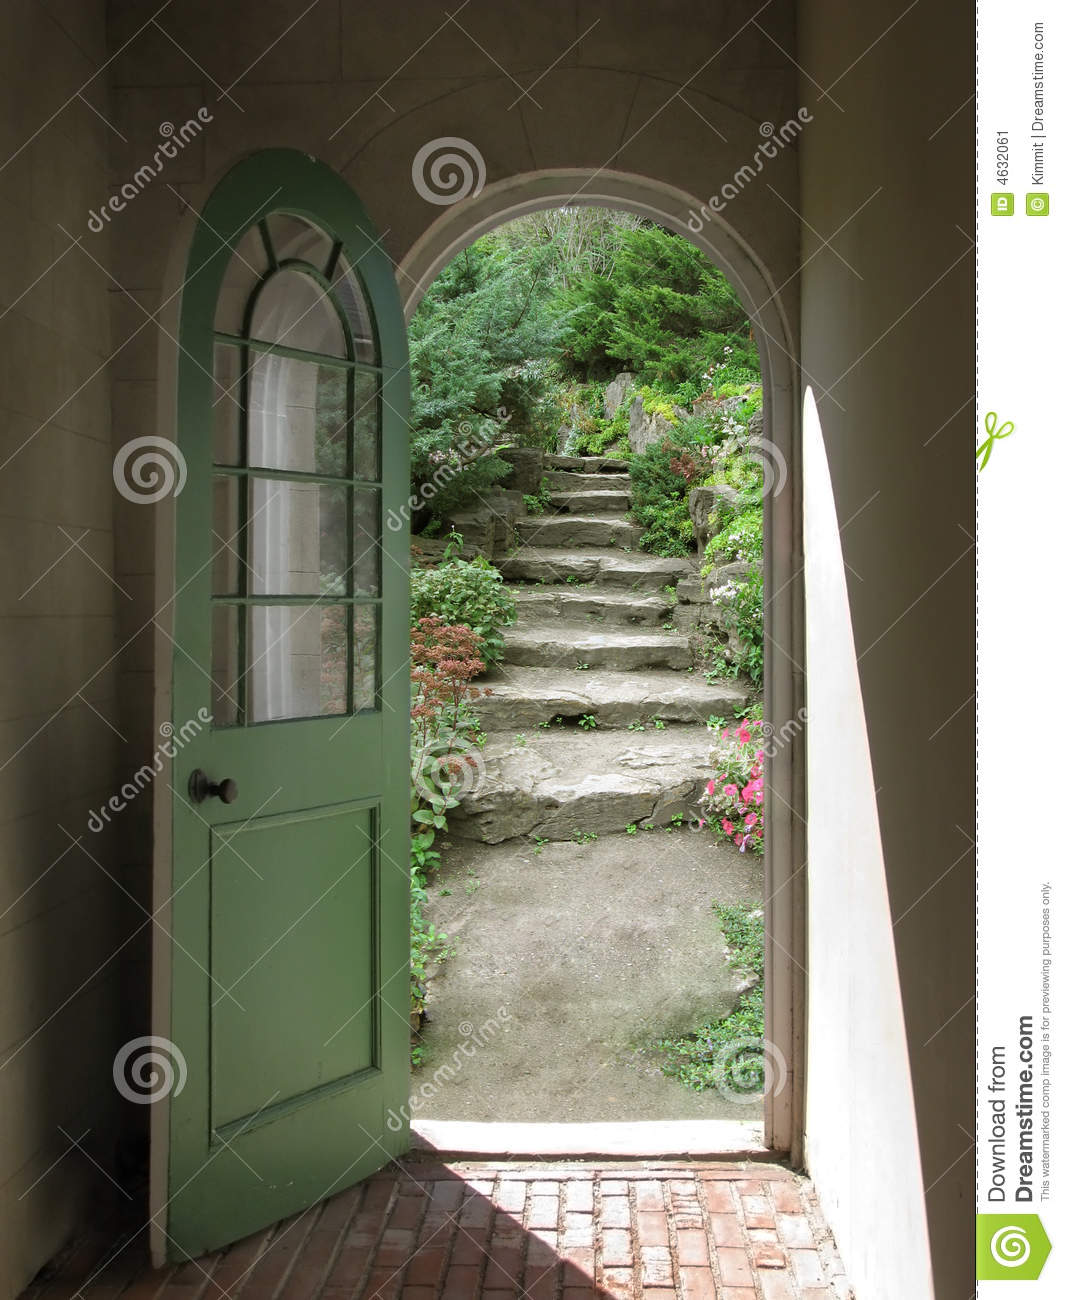 Arched Doorway Opening On Stone Garden Stairs With Sunlight Streaming